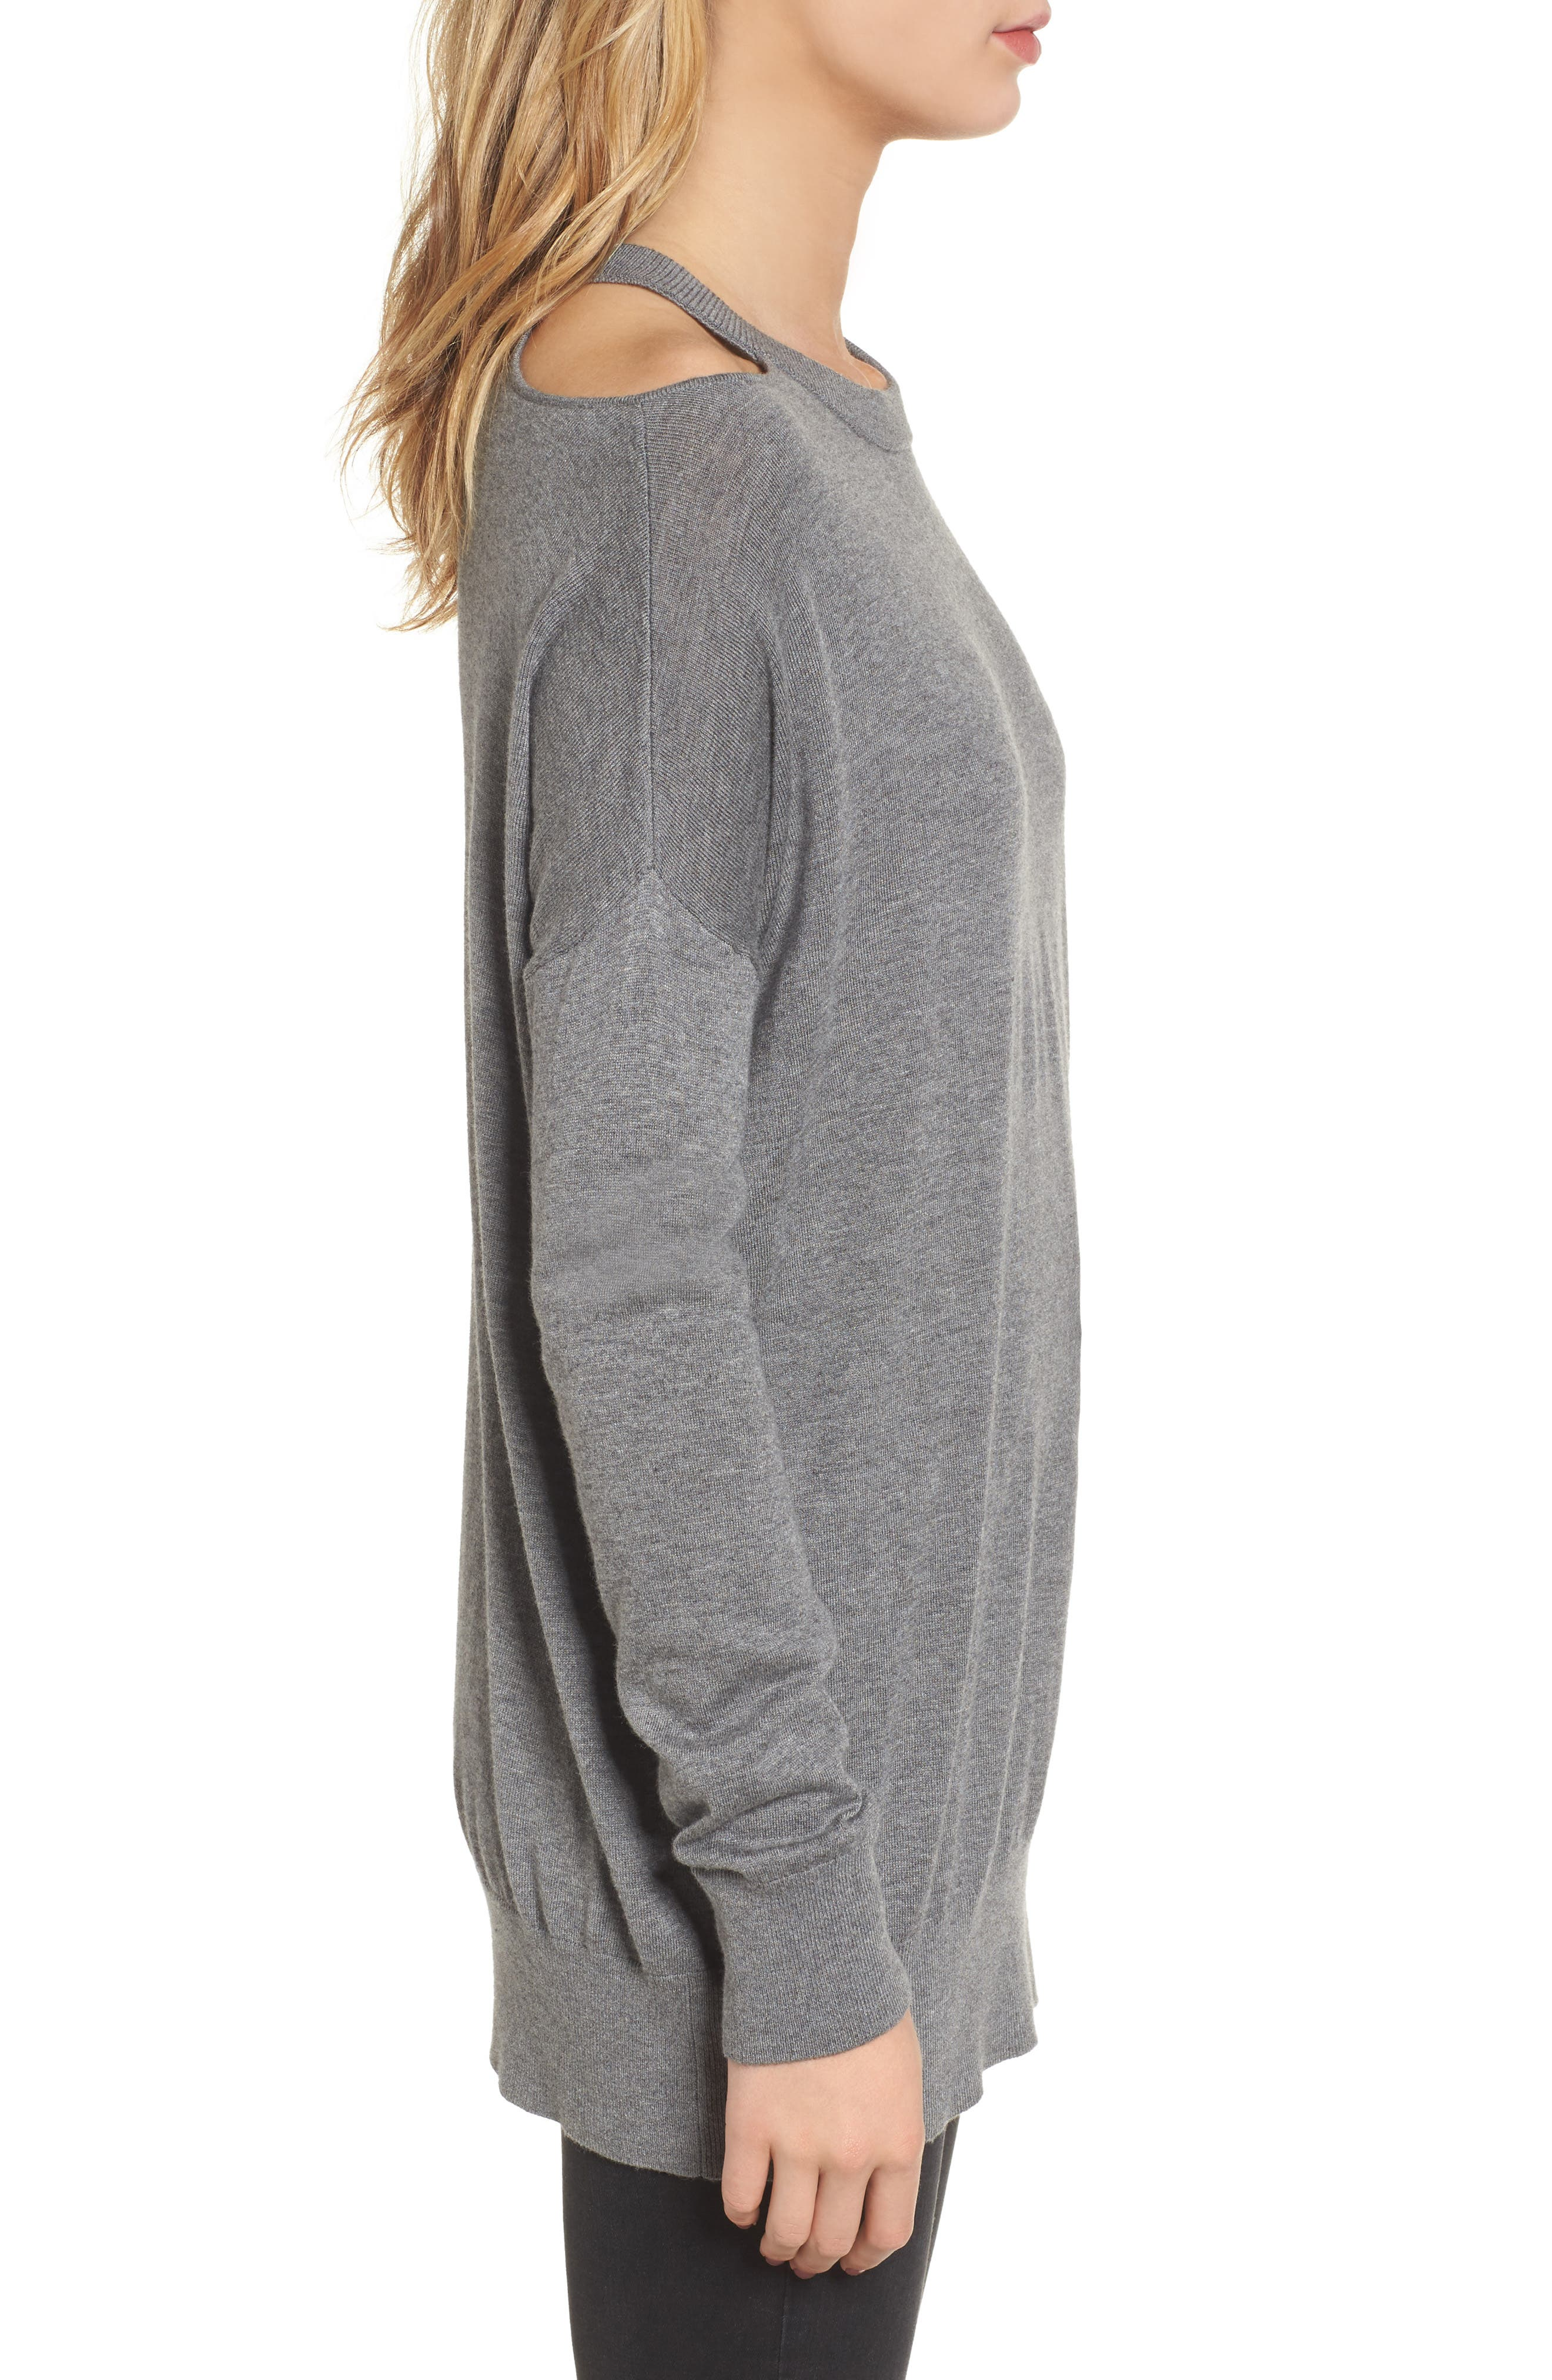 Canarise Cutout Sweater,                             Alternate thumbnail 3, color,                             039